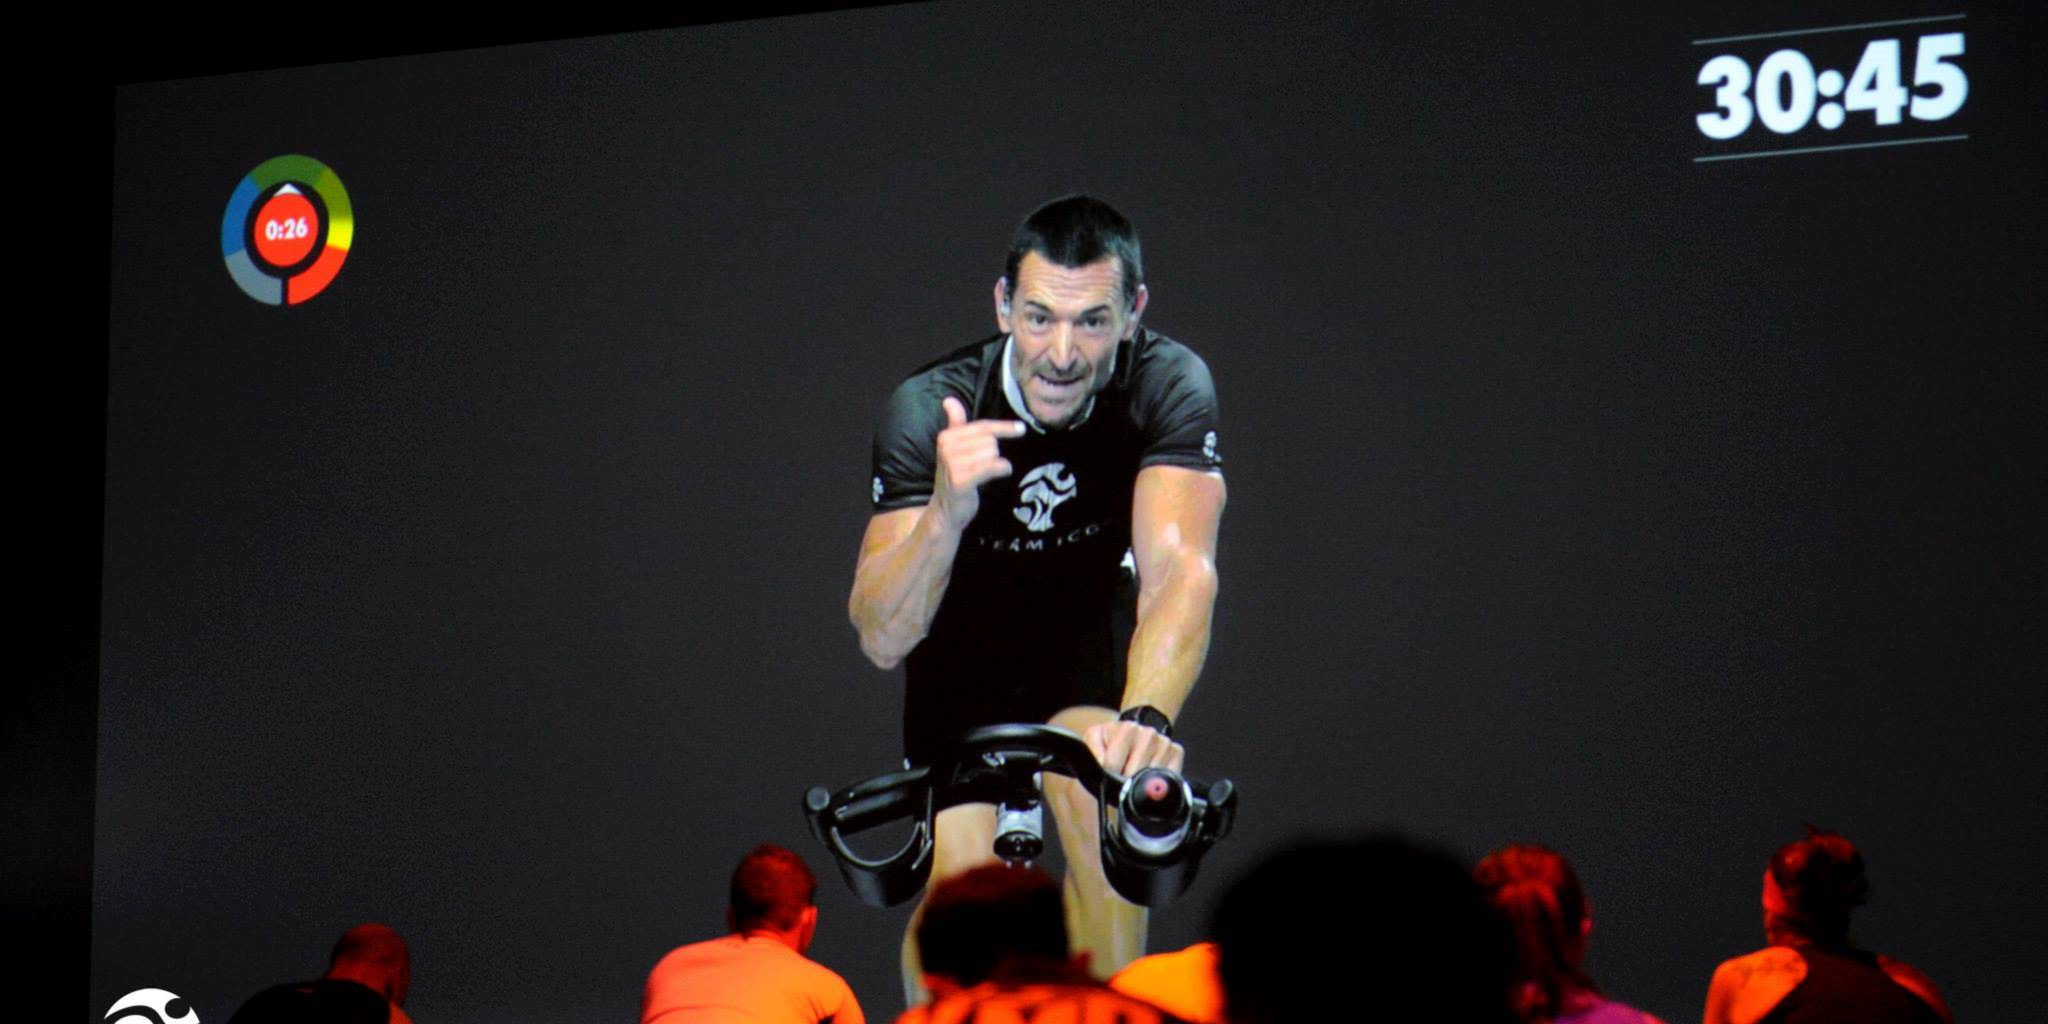 Virtual Coaching Spinning & Indoor Cycling bij Fitness de Bataaf in Den Haag